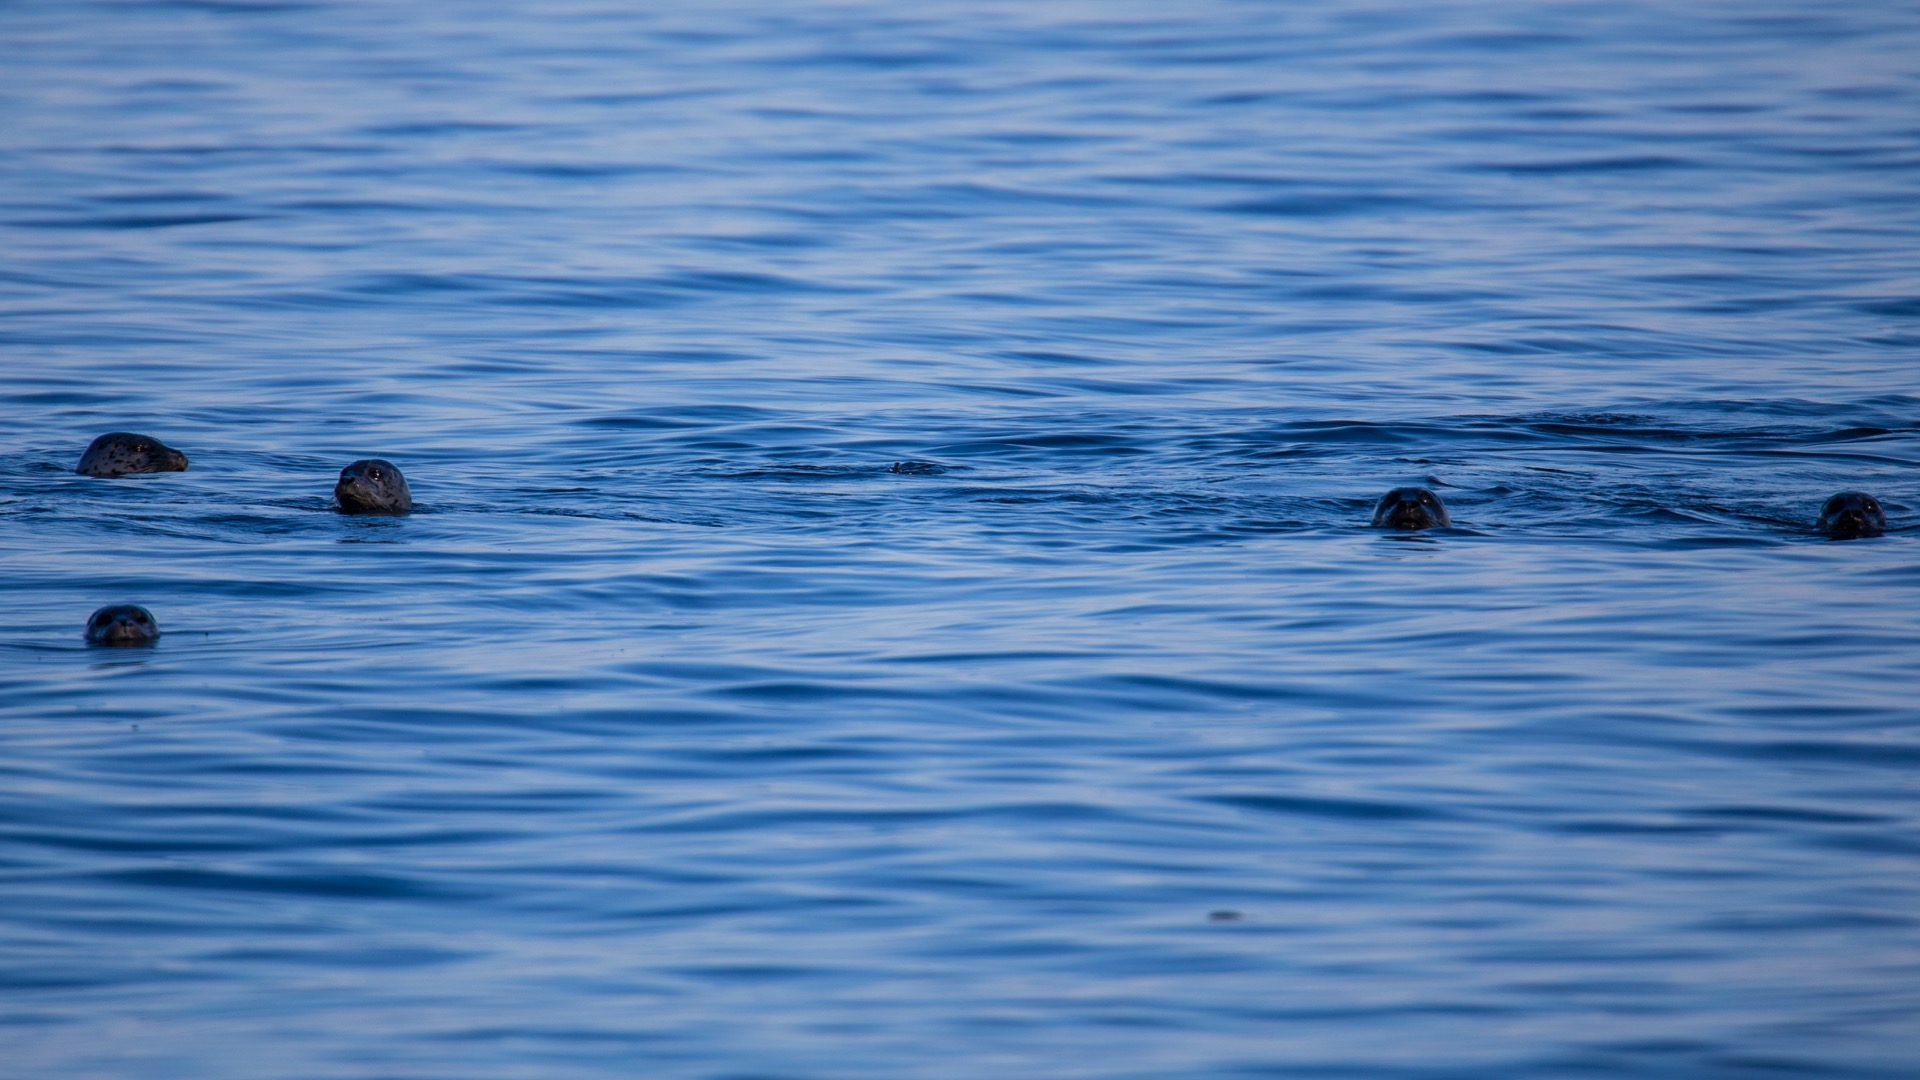 There were at least a dozen harbour seals, just floating a little ways off the beach.